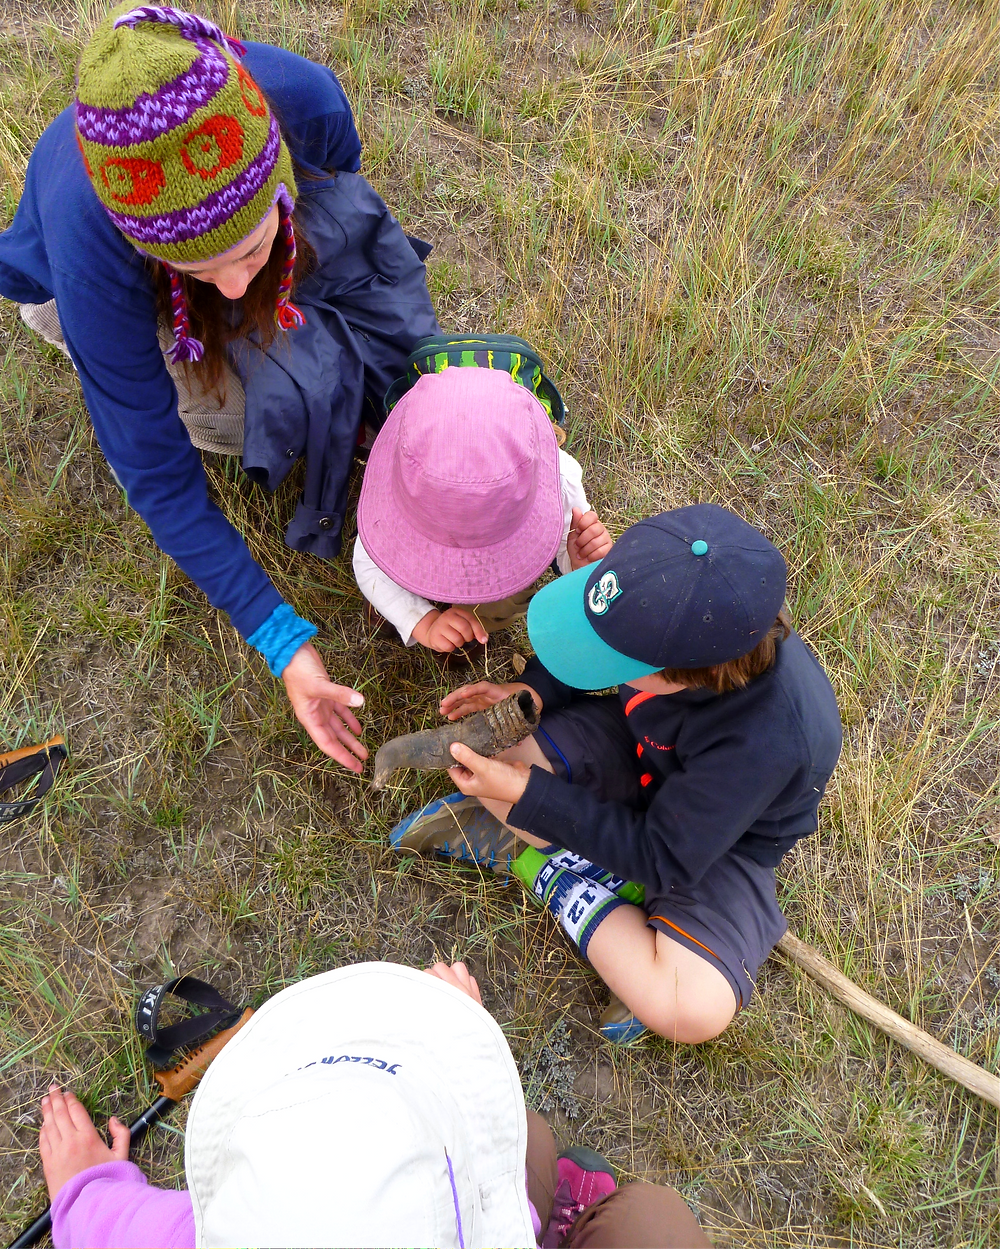 A family invesitgates a pronghorn sheath found on a hike in Yellowstone